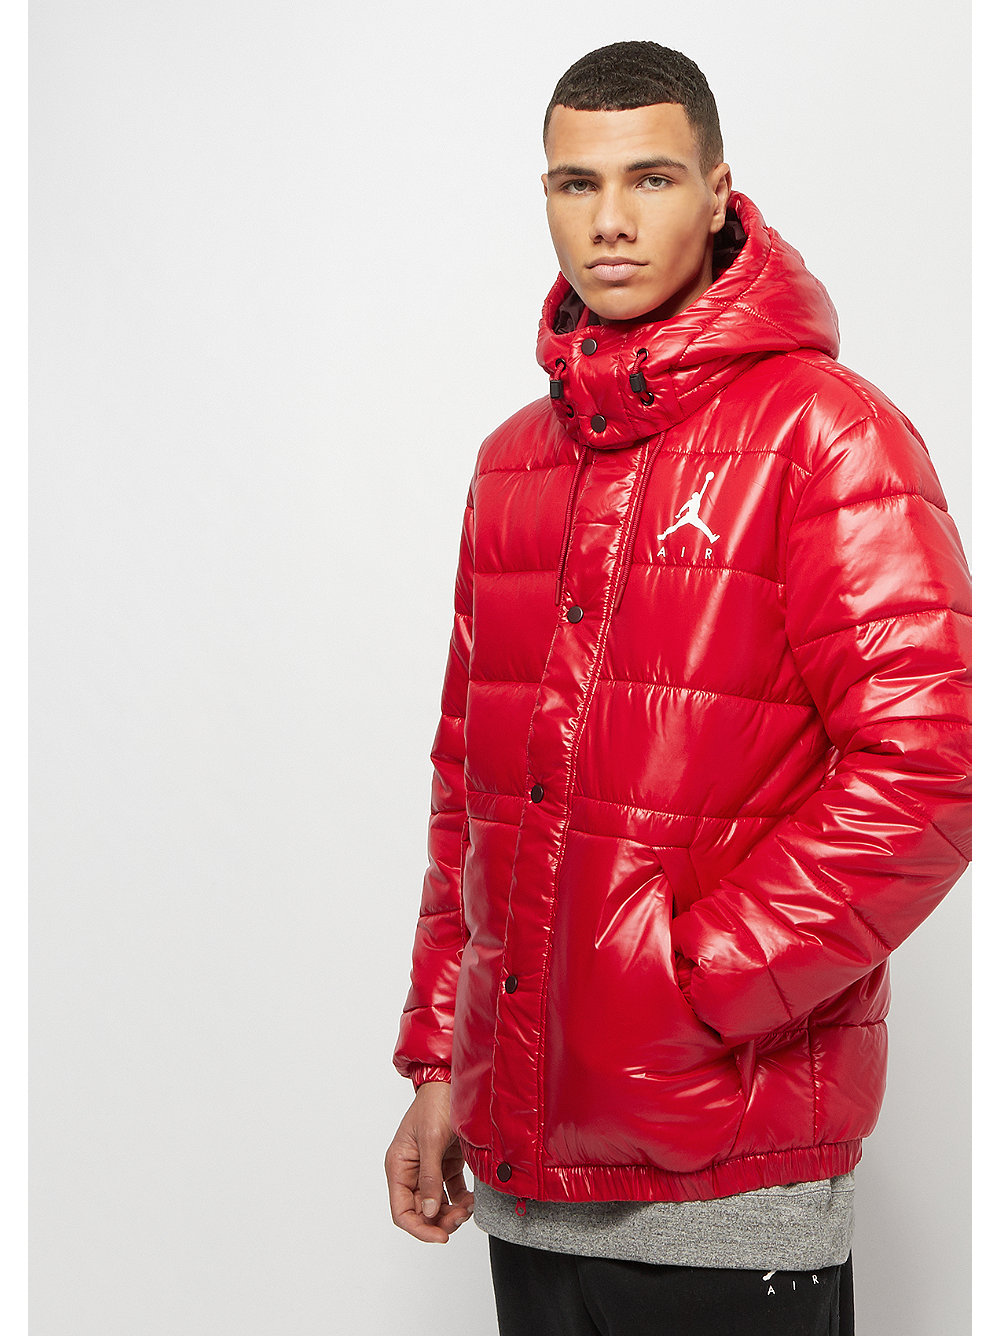 Gym Jumpman Jordan Burgundy Red Commander Puffer Crush White Jacket 5IqdwZ